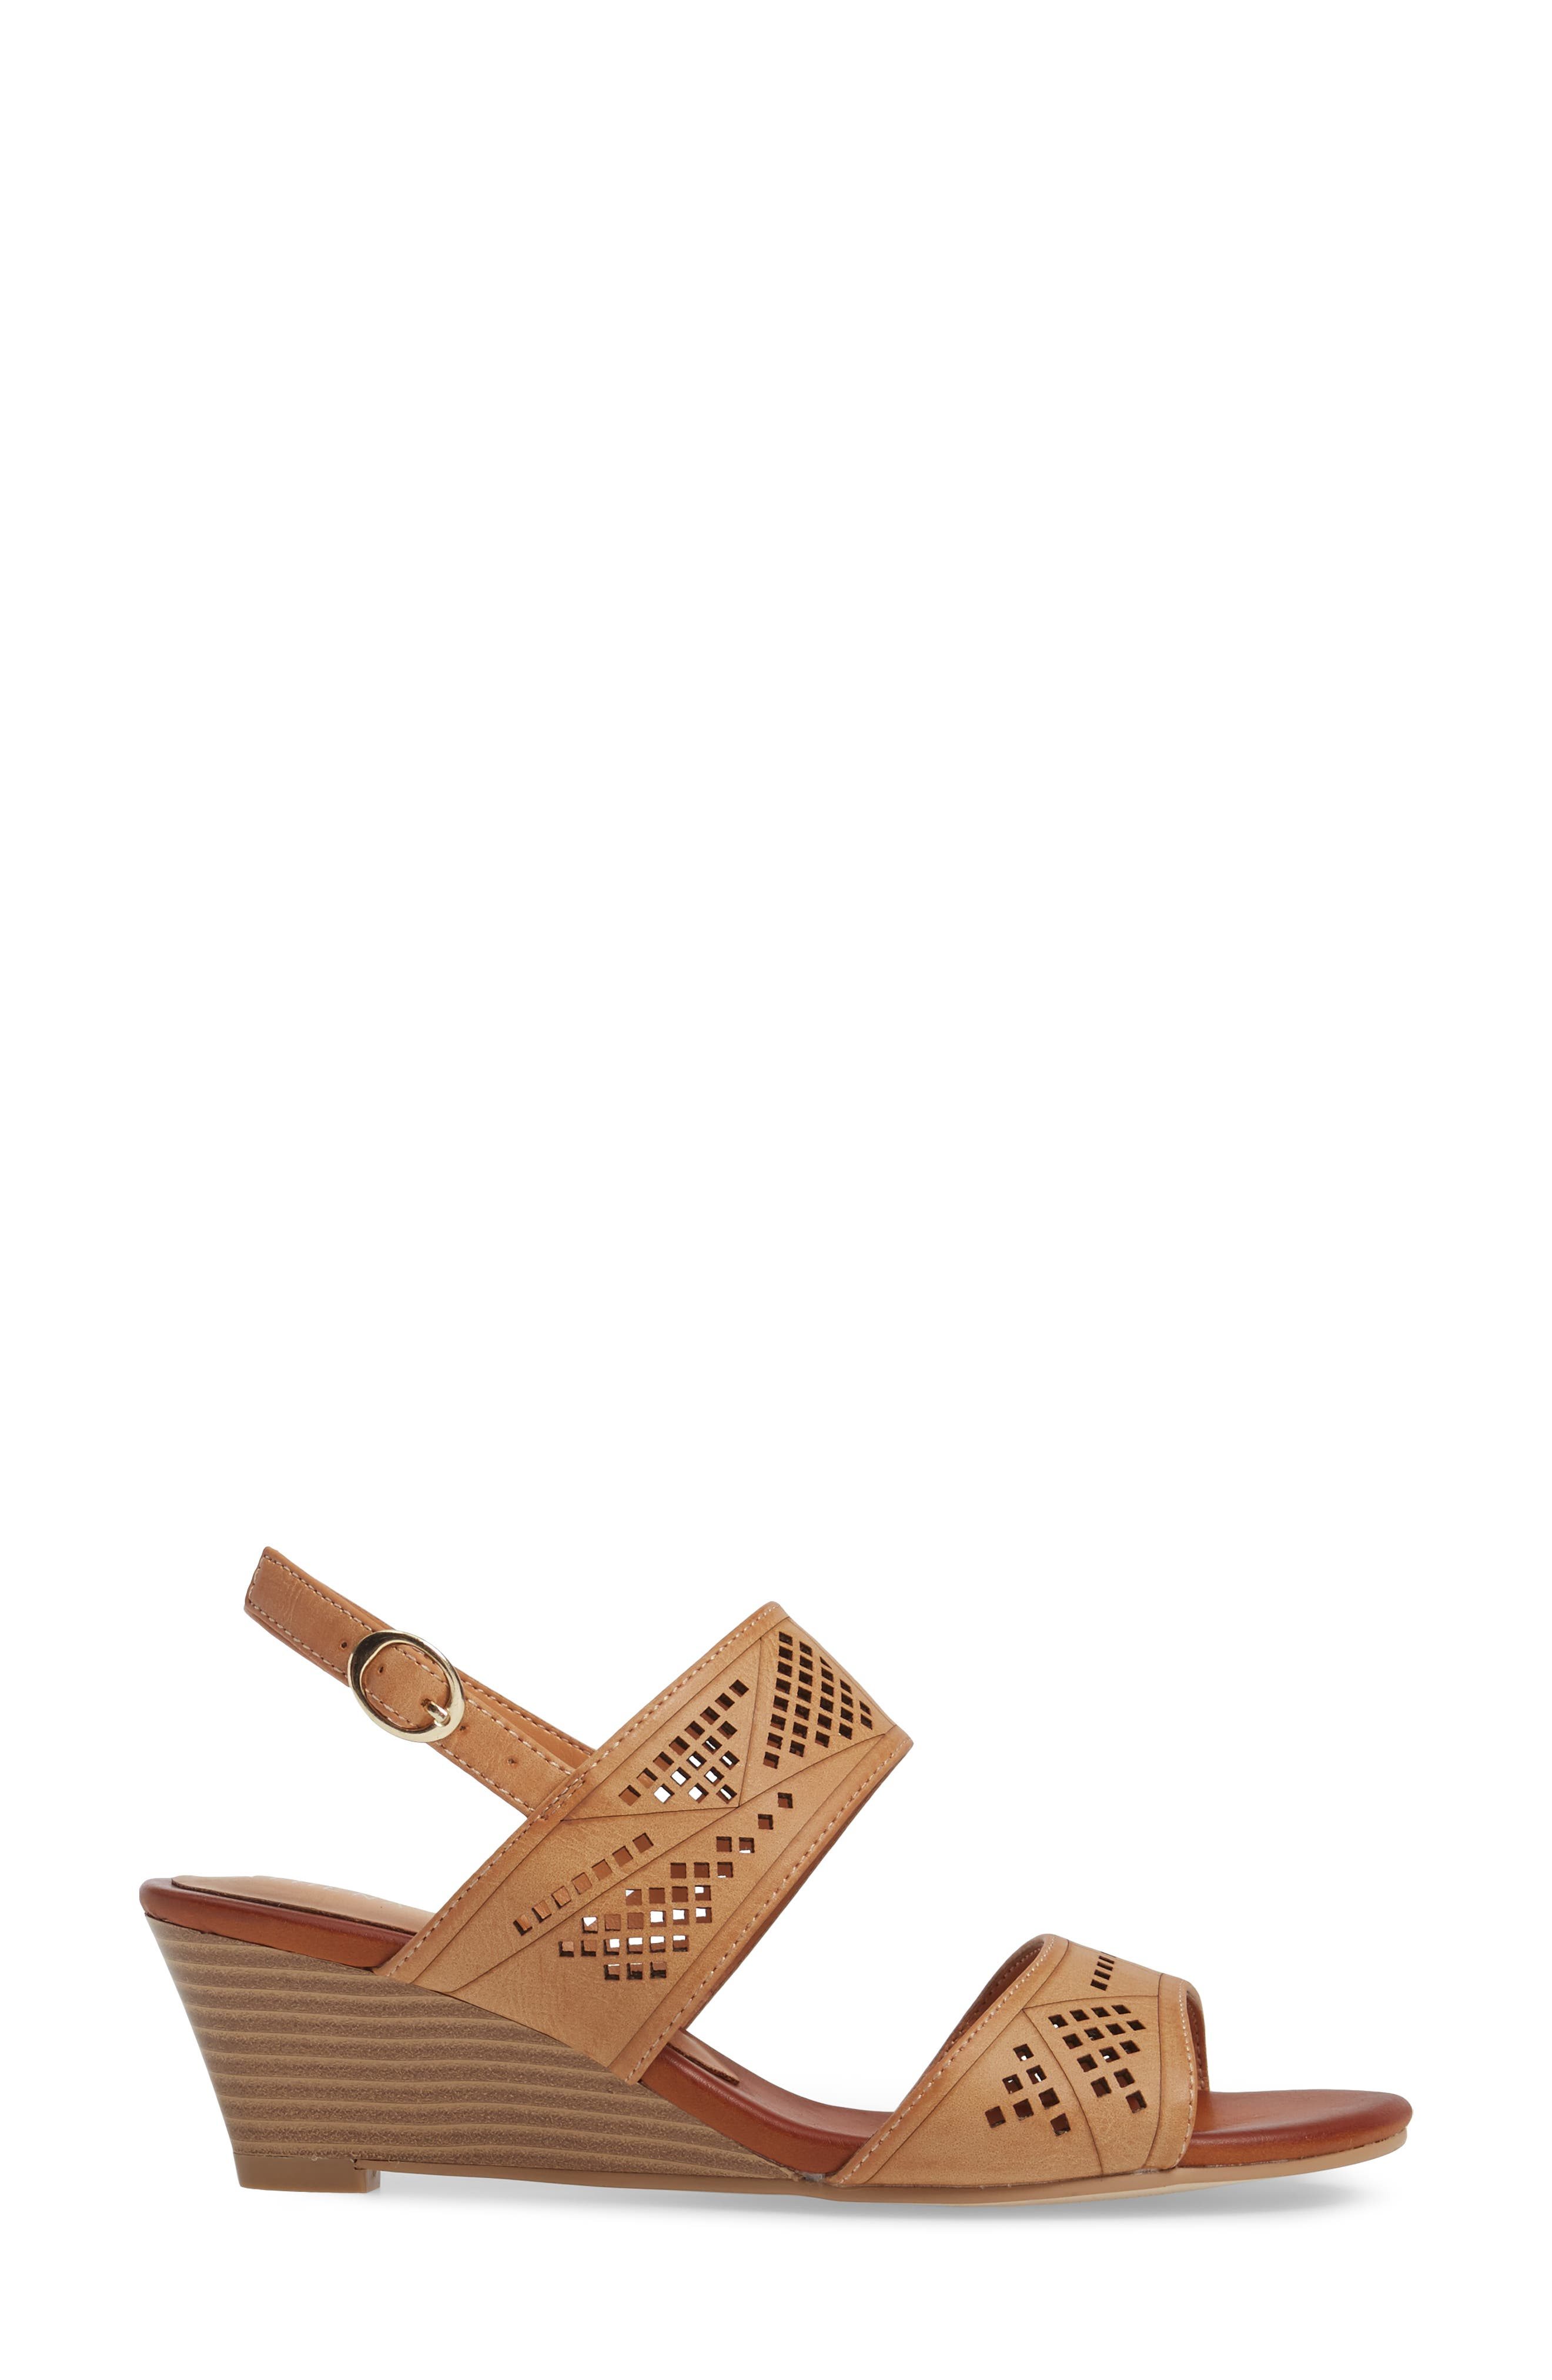 Sparce Perforated Wedge Sandal,                             Alternate thumbnail 6, color,